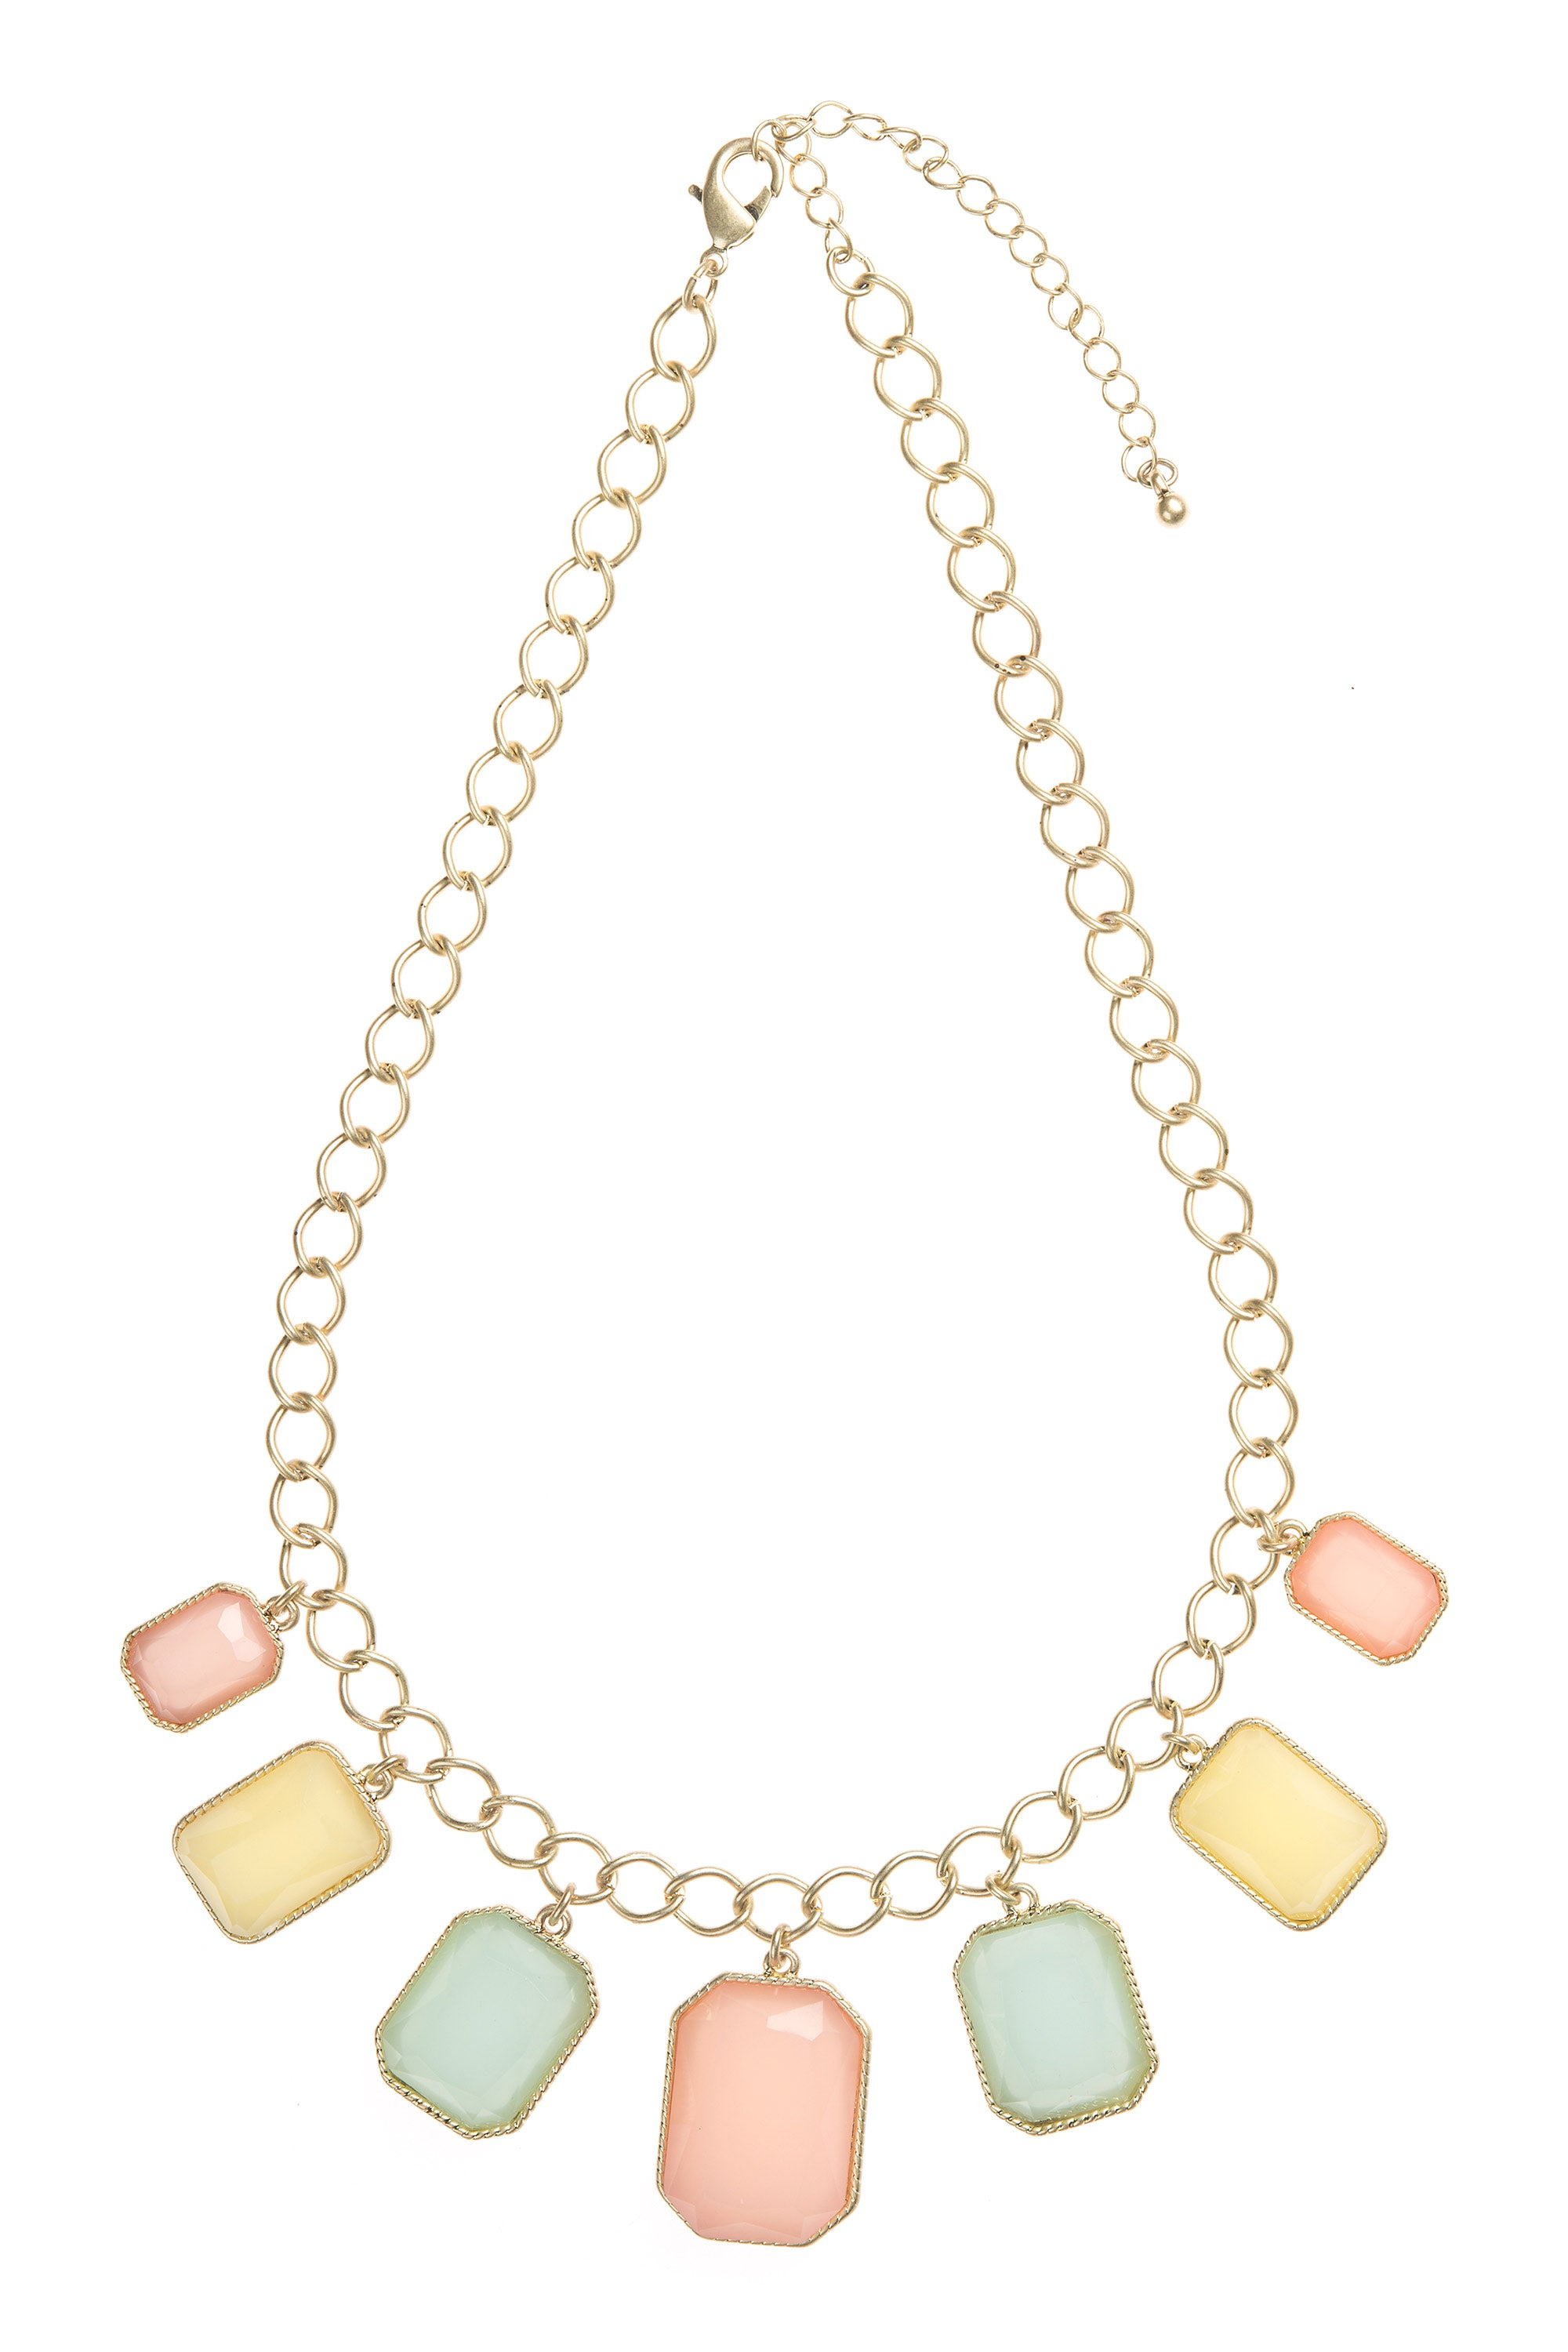 Type 1 Pretty Pastels Necklace